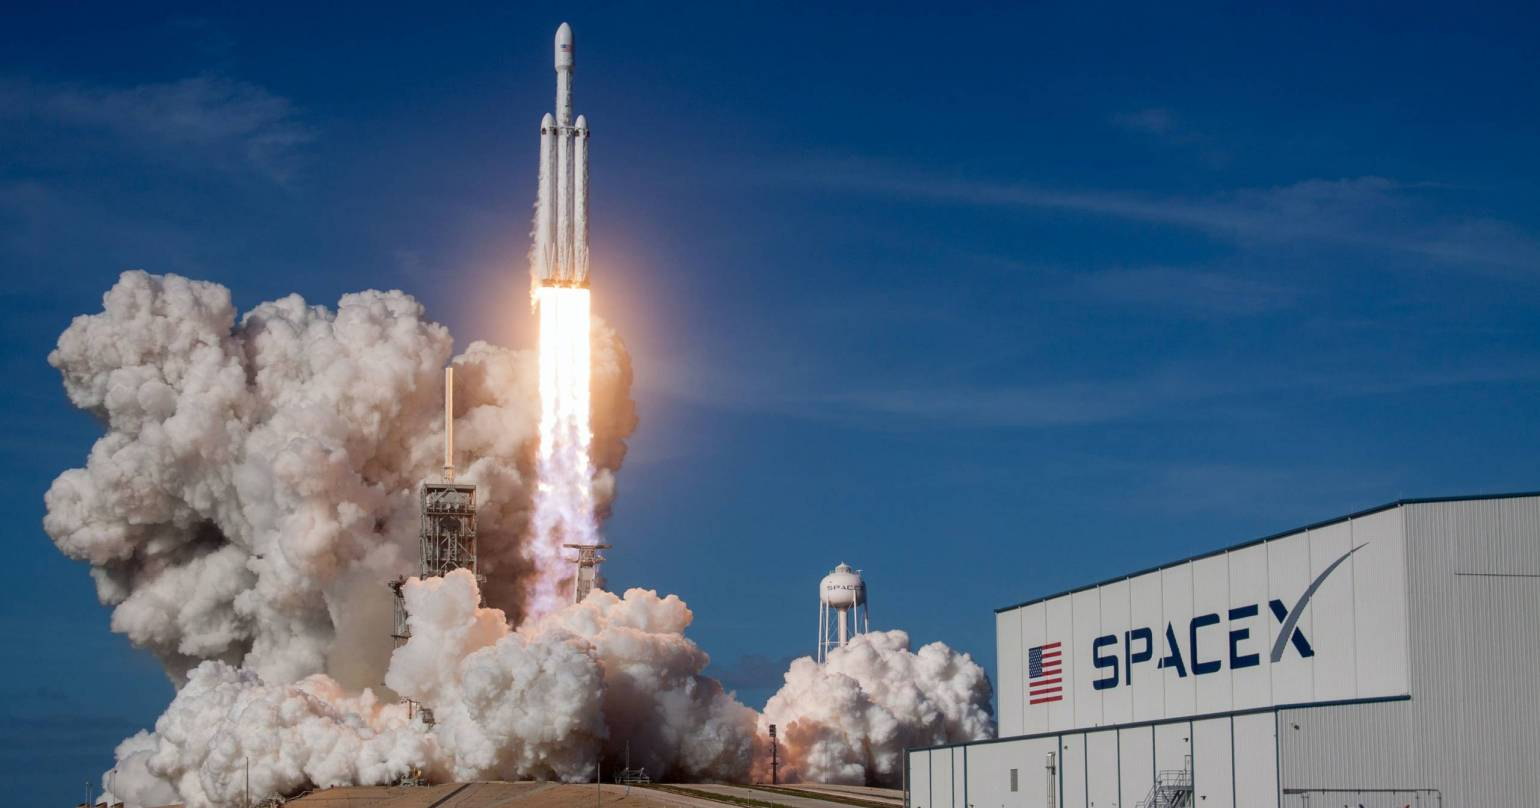 What's SpaceX got to do with it?